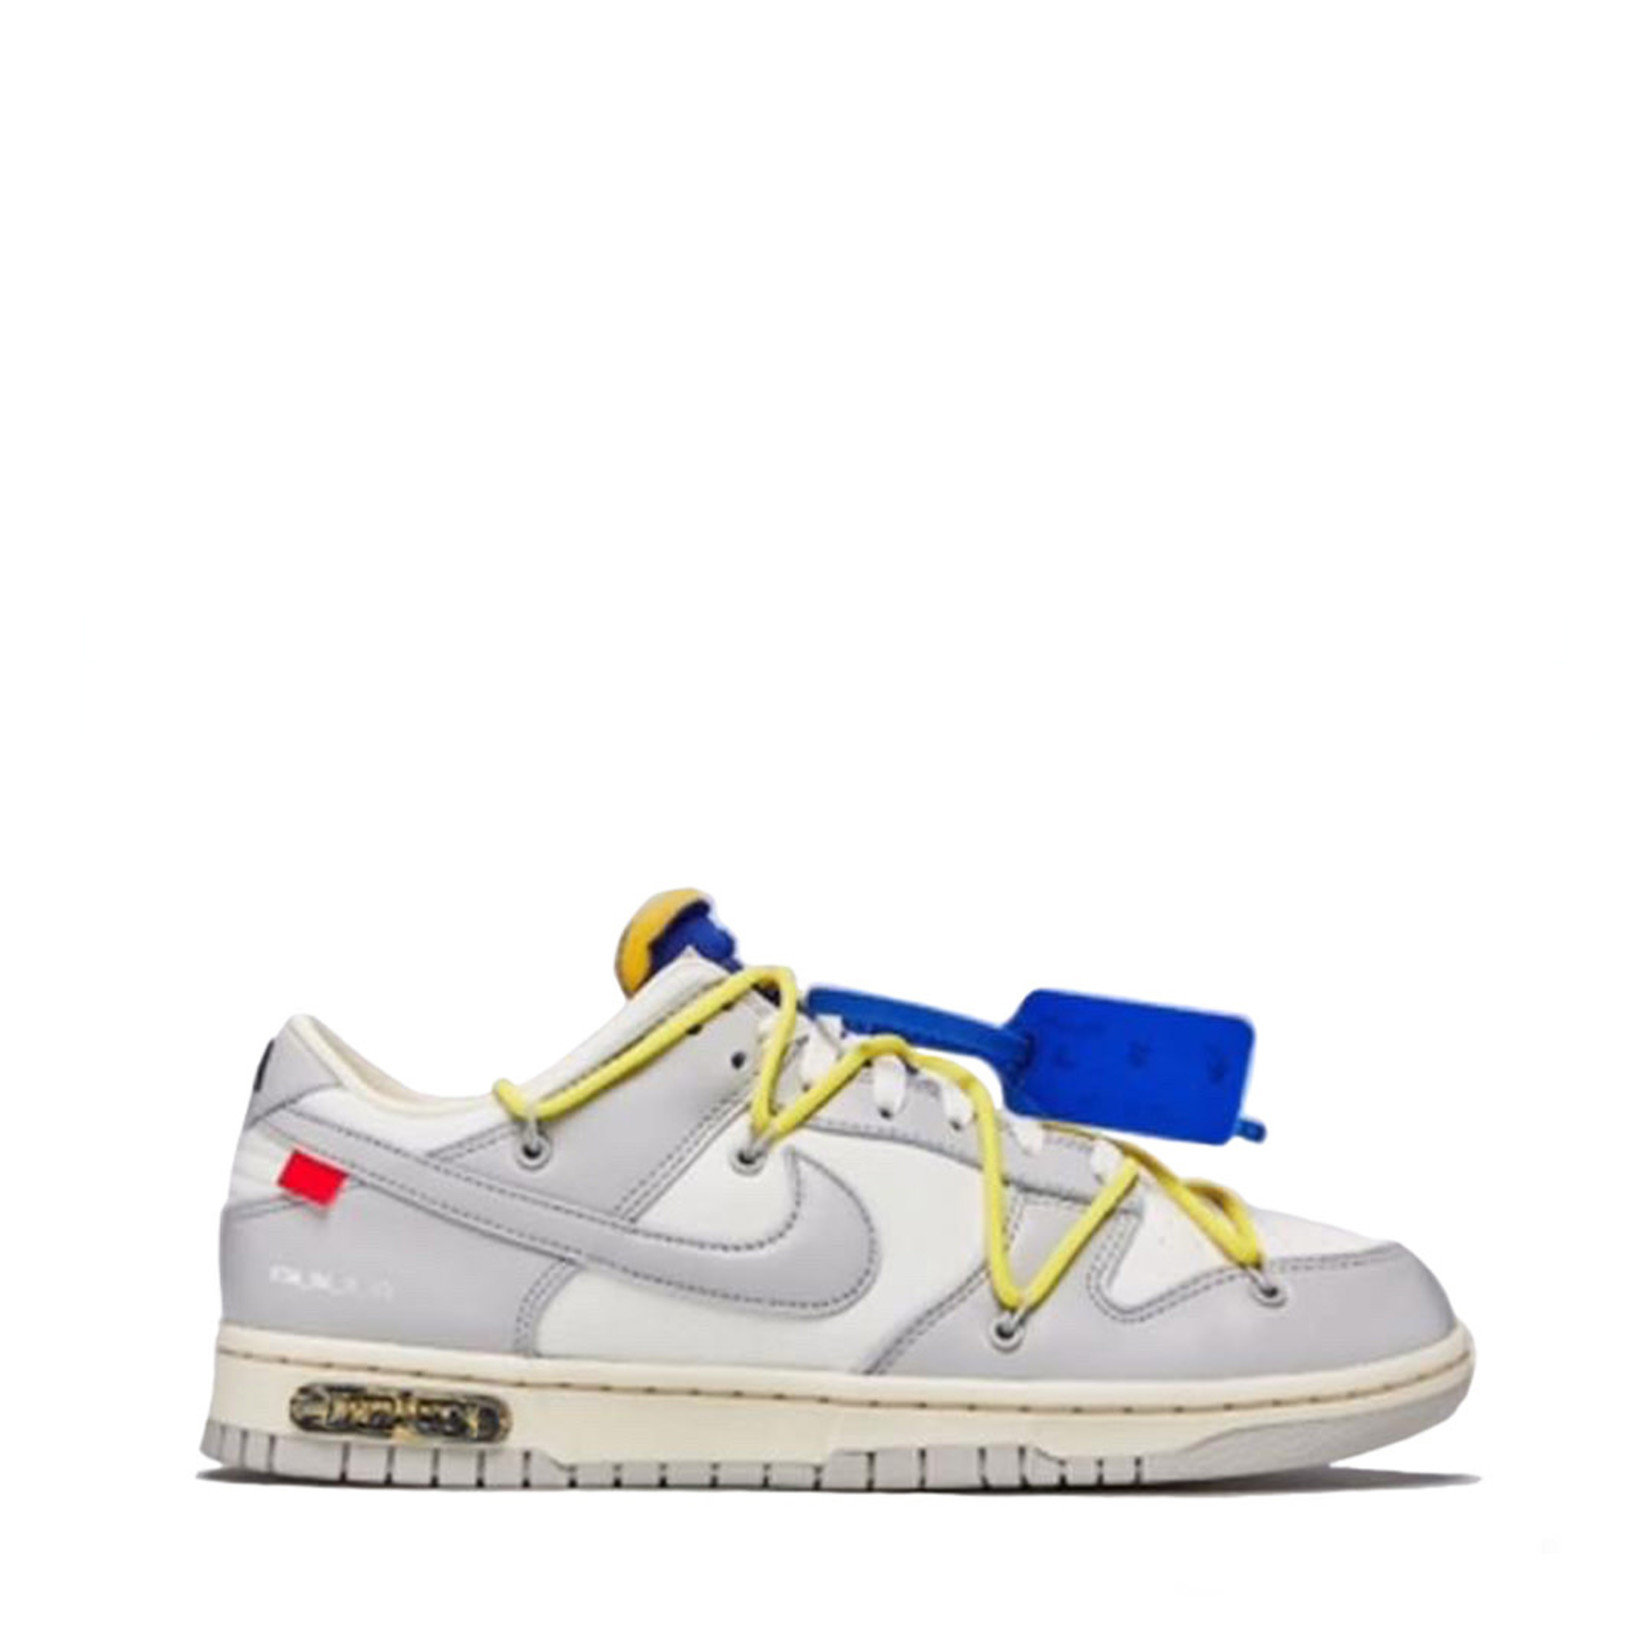 Off-White Nike Dunk Low Off-White Lot 27